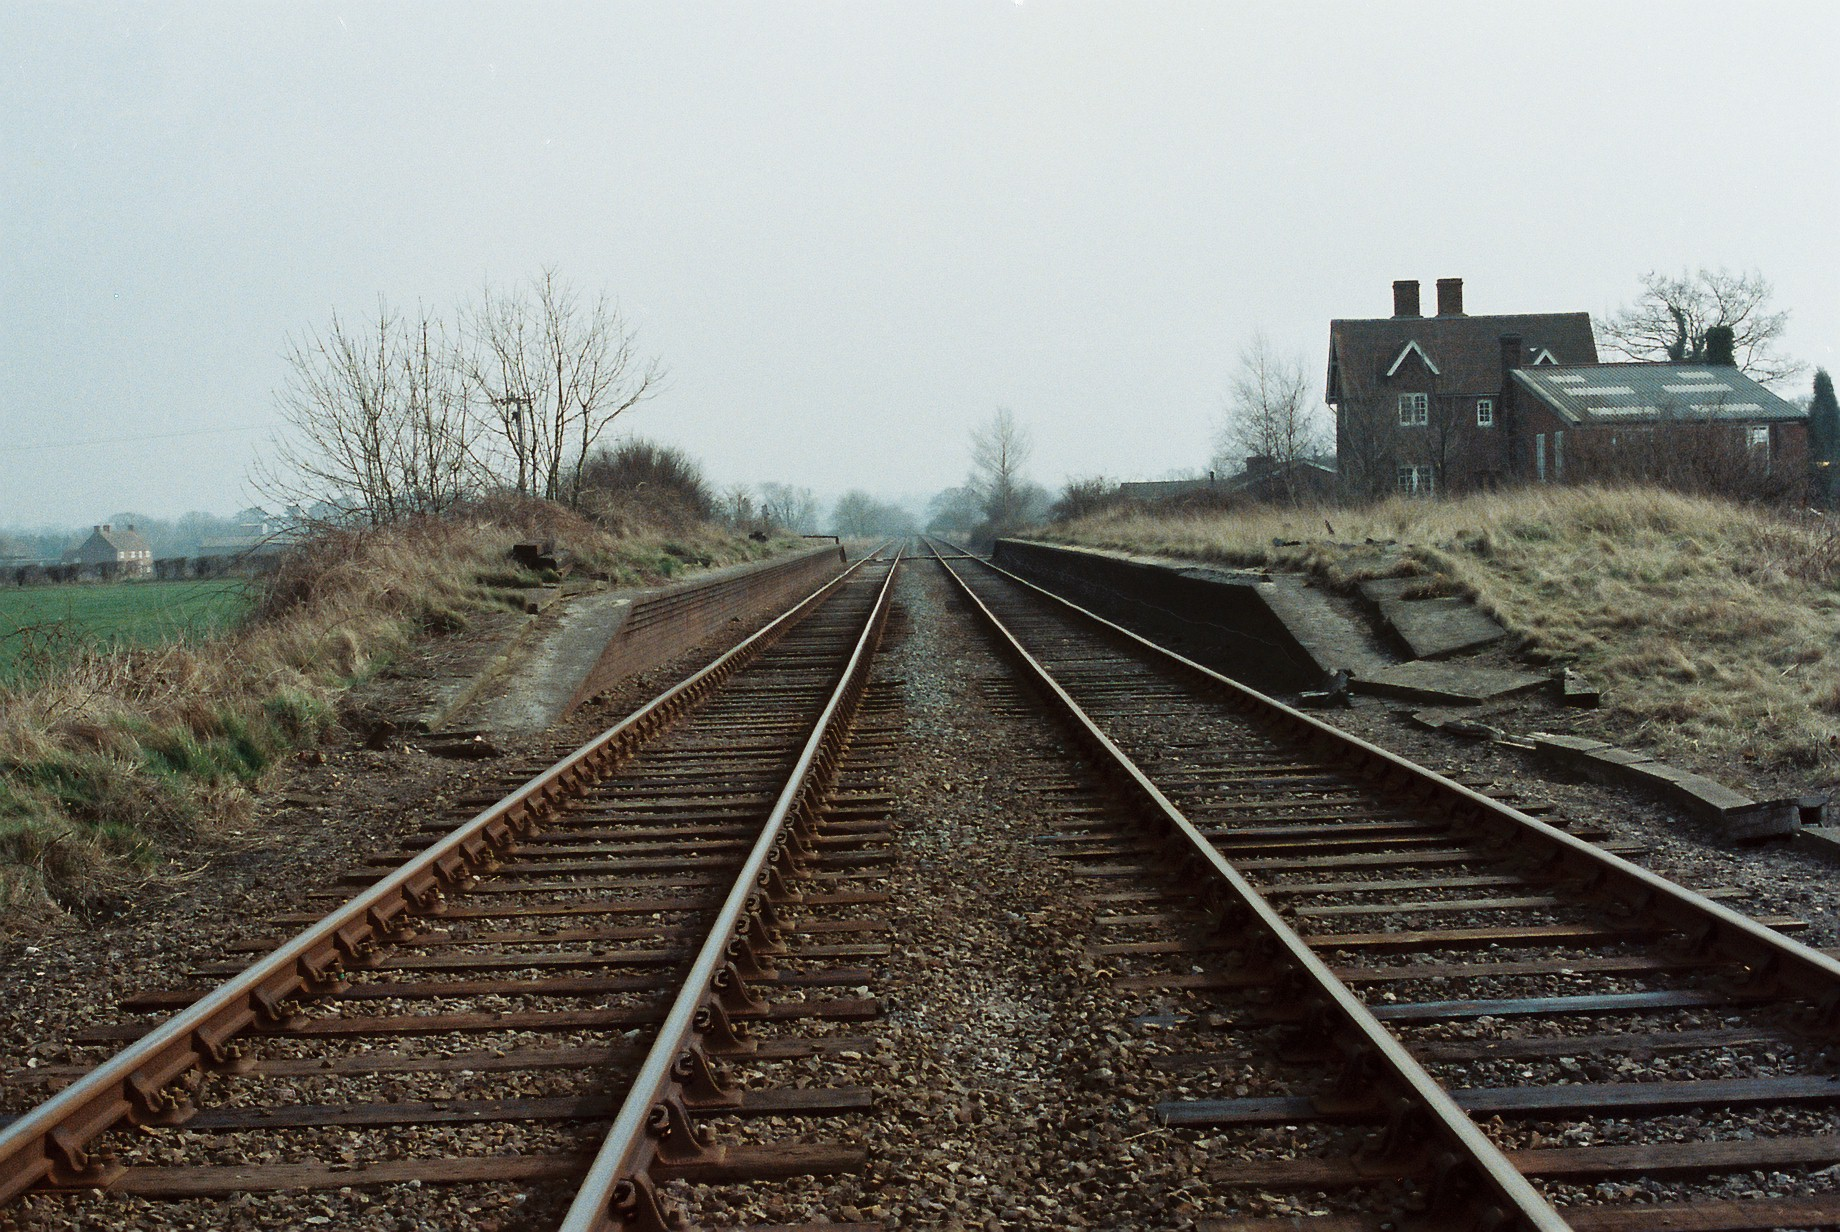 Verney Junction pictured in 1983 (image: Wikipedia)